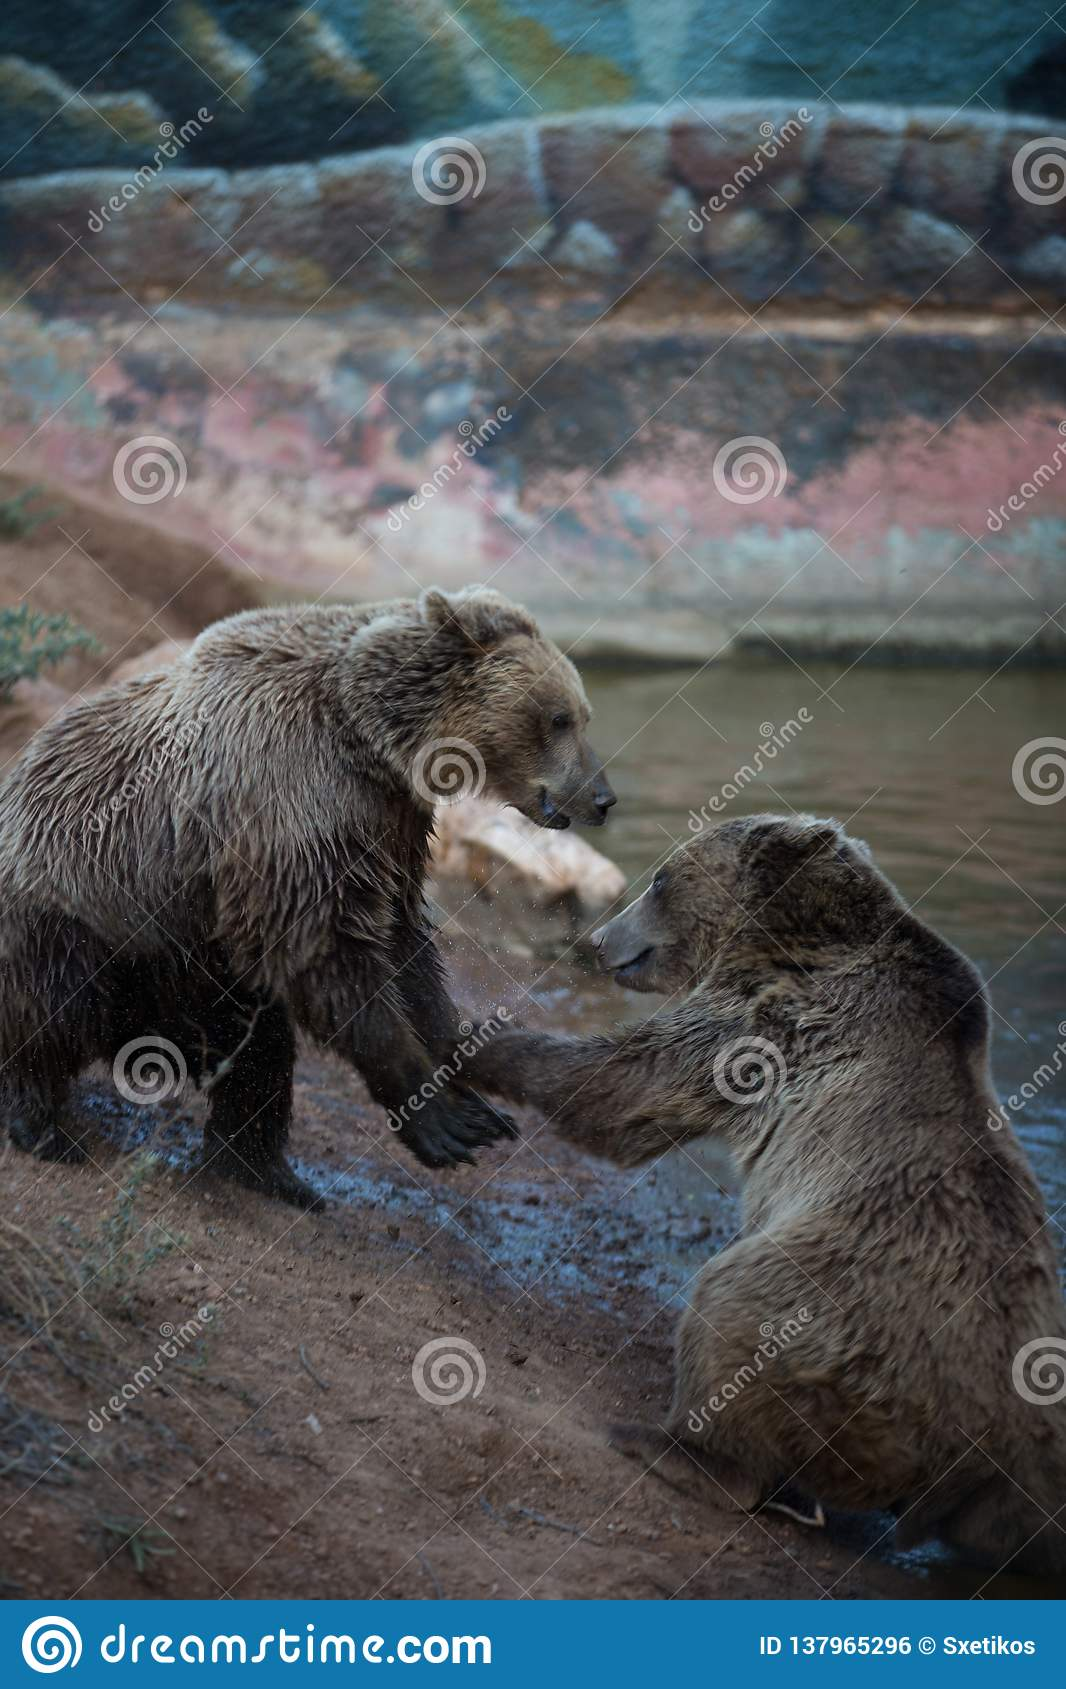 A fight between two brown bears